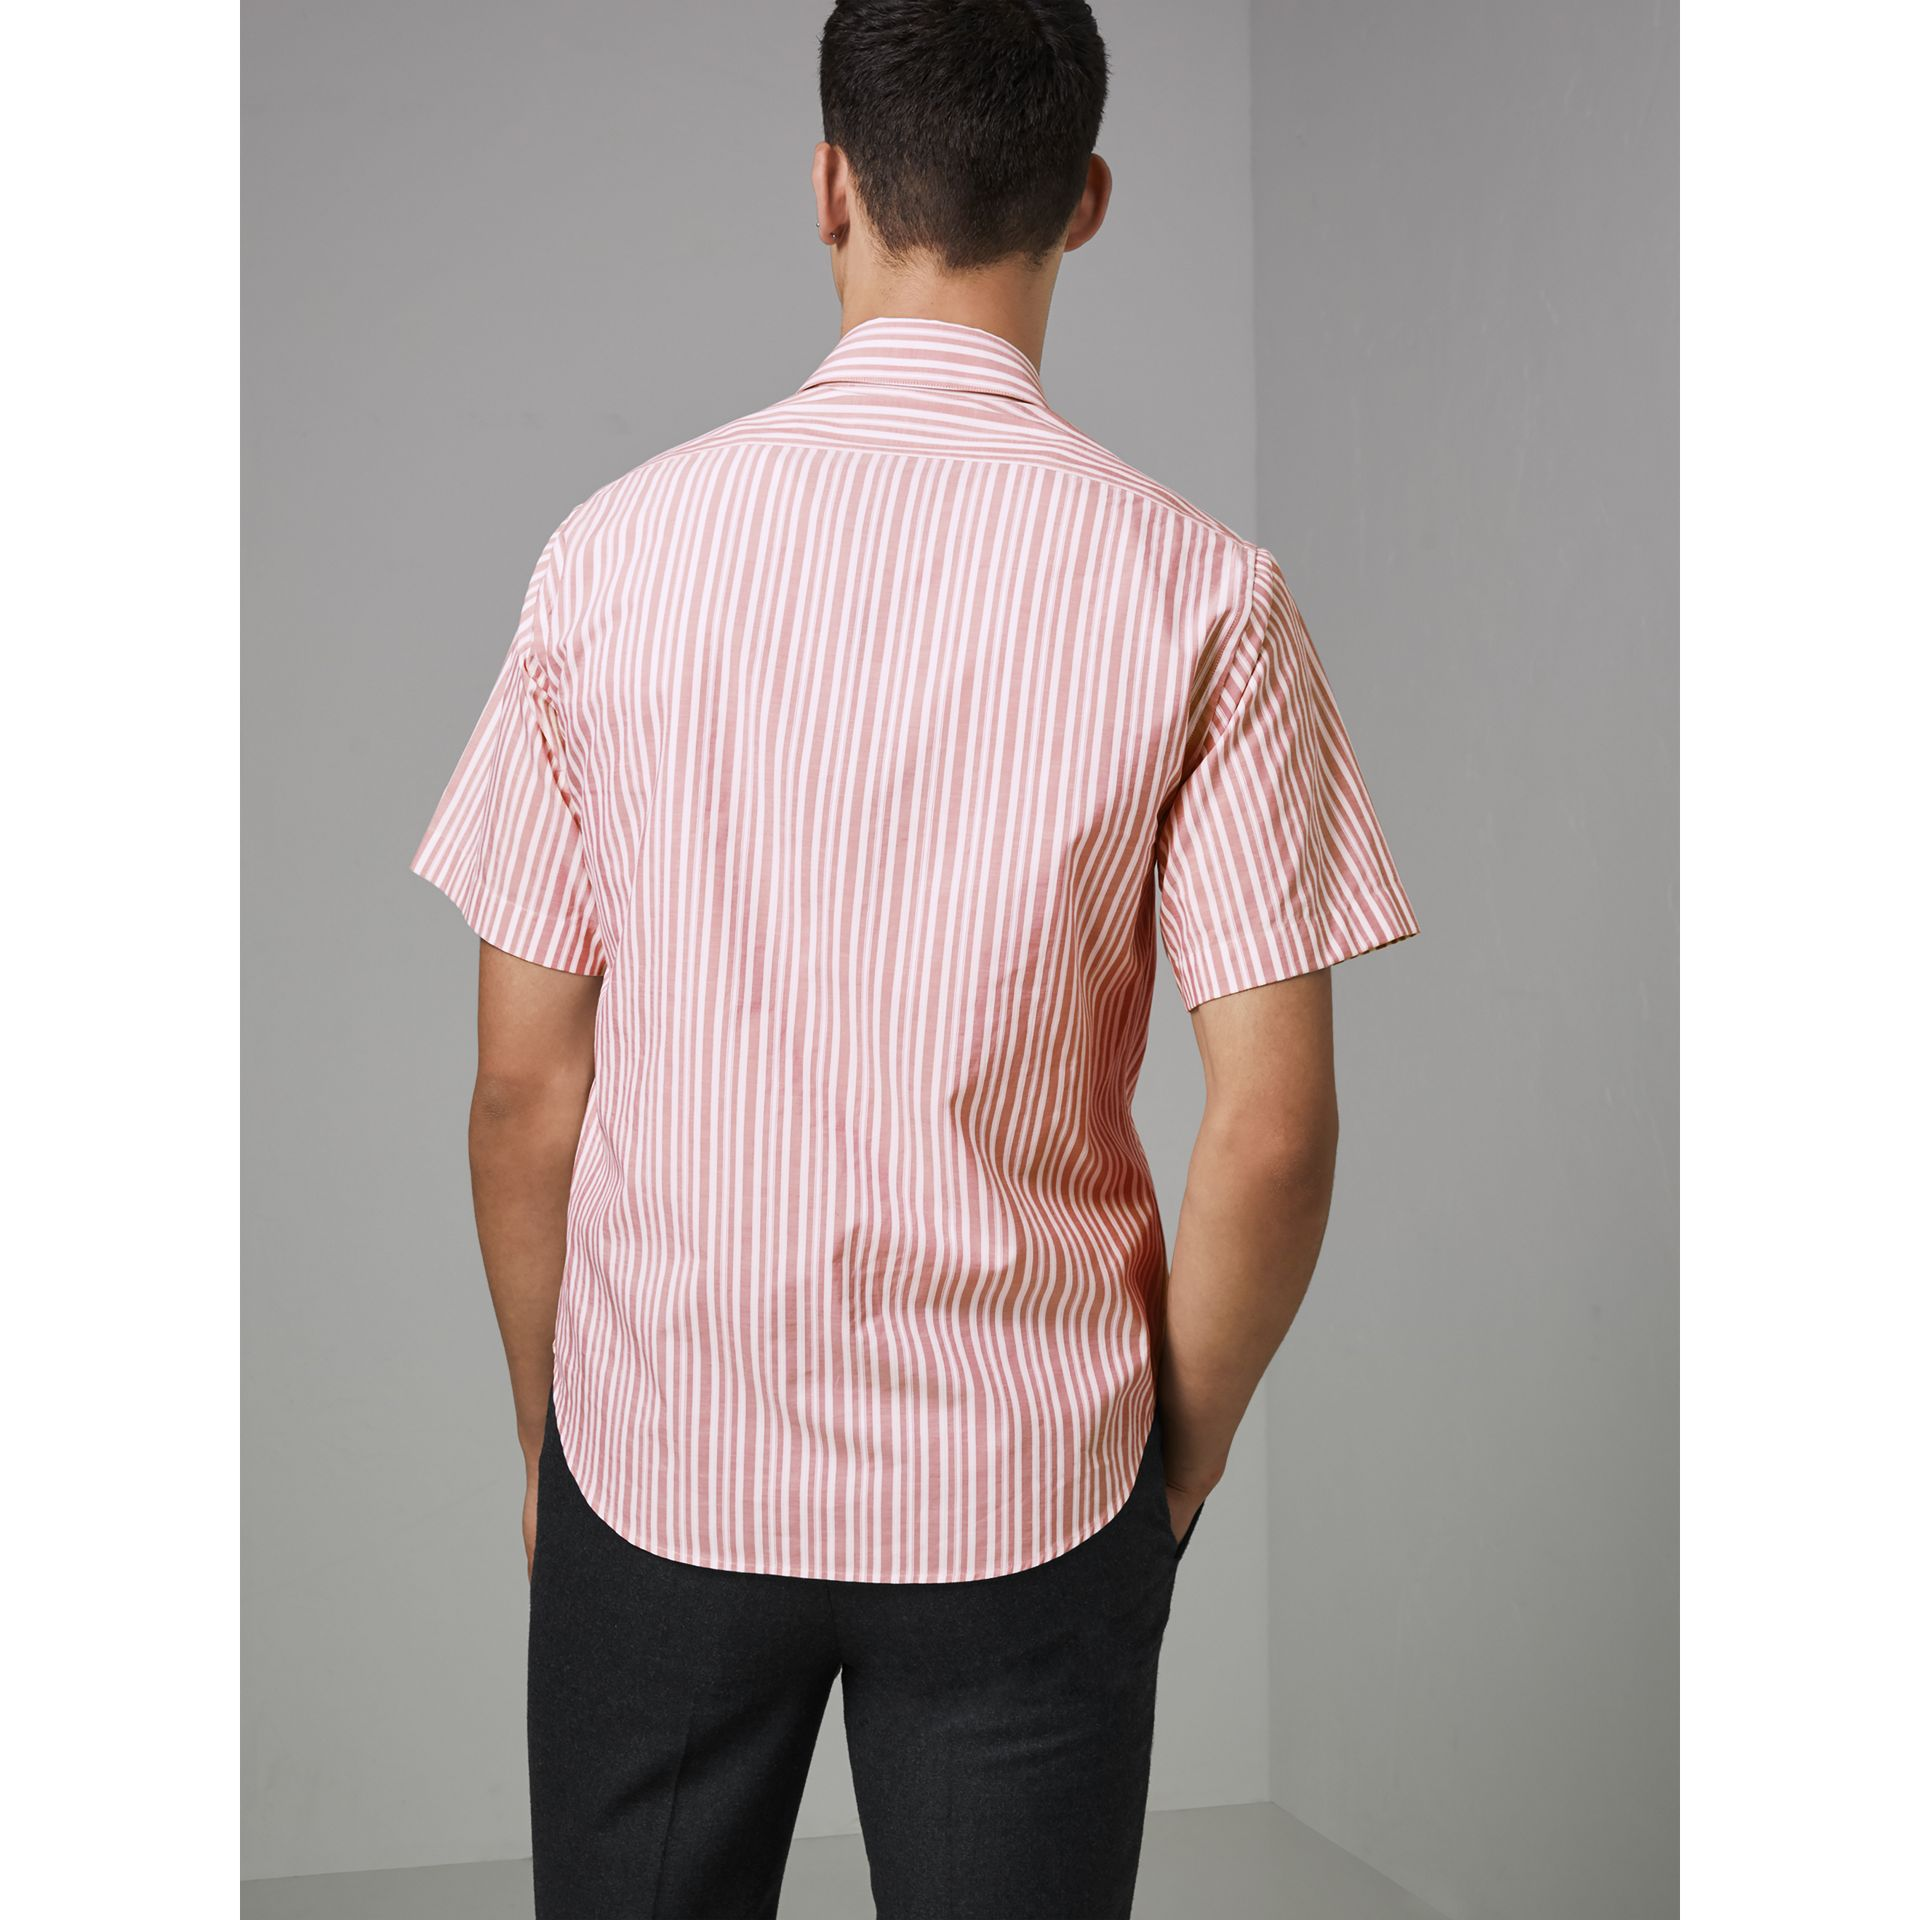 Embroidered Archive Logo Striped Short-sleeve Shirt in Light Pink - Men | Burberry - gallery image 2